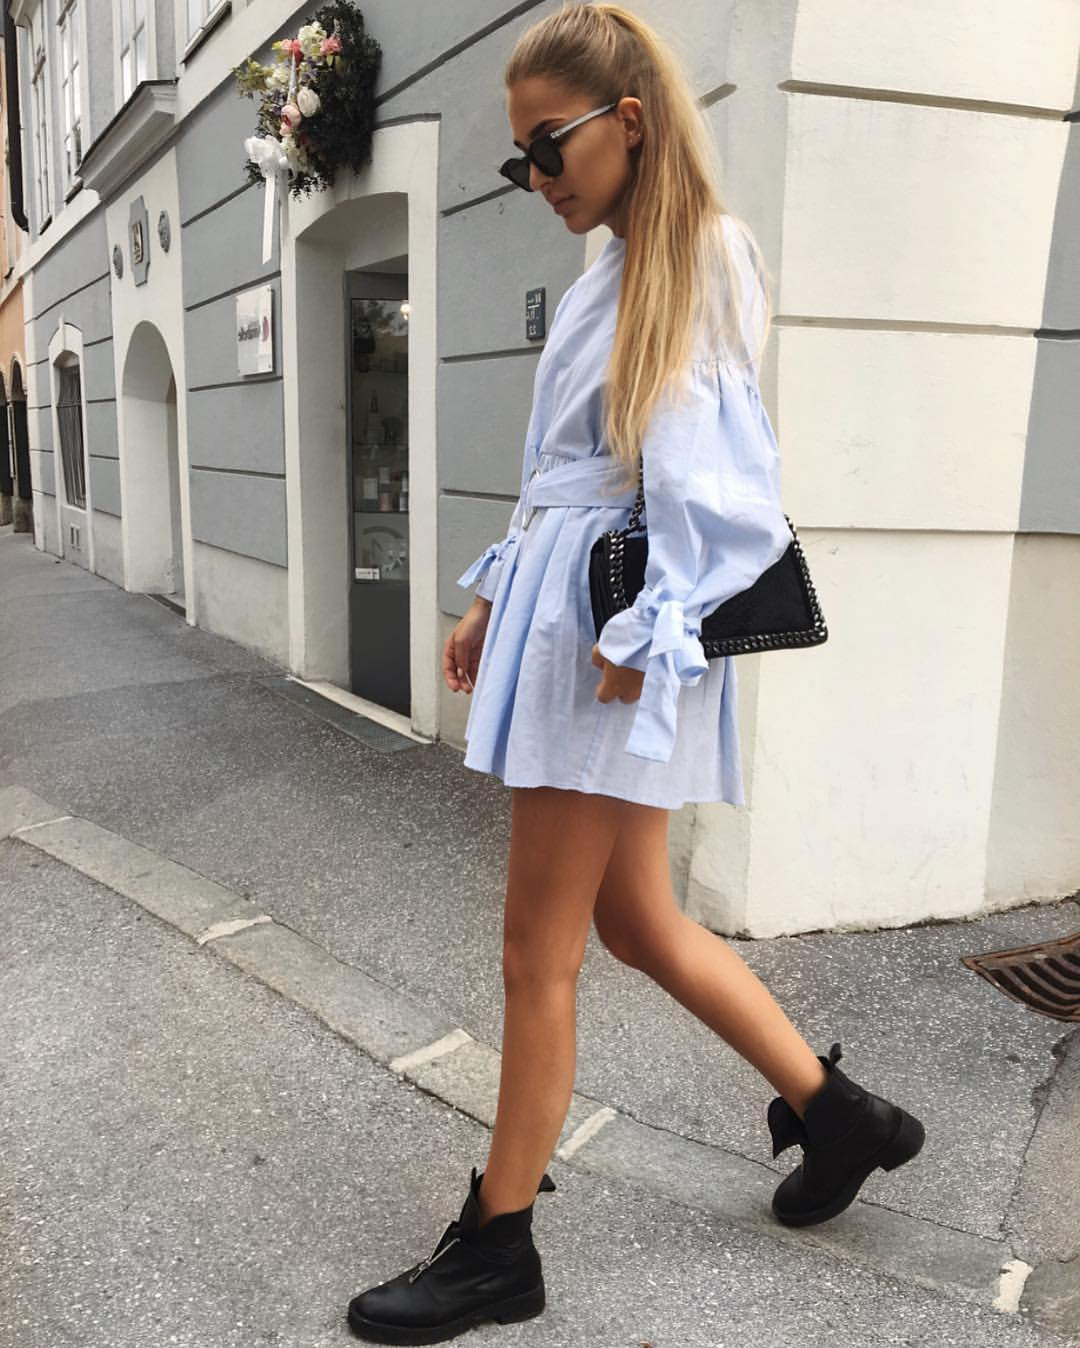 Pastel Blue Tied Shirtdress And Black Leather Flat Ankle Boots For Summer 2021